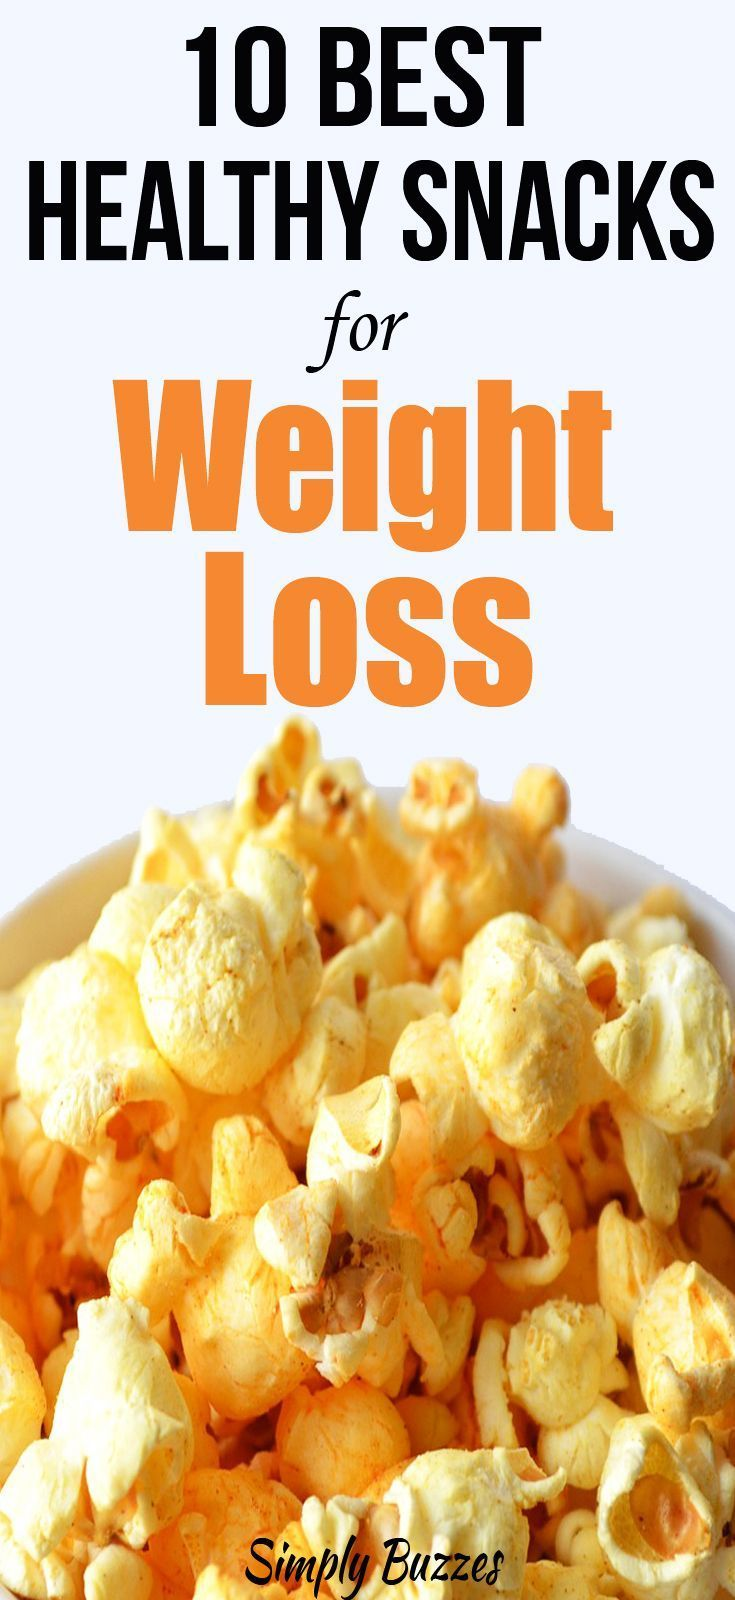 Does vitamin d3 cause weight loss